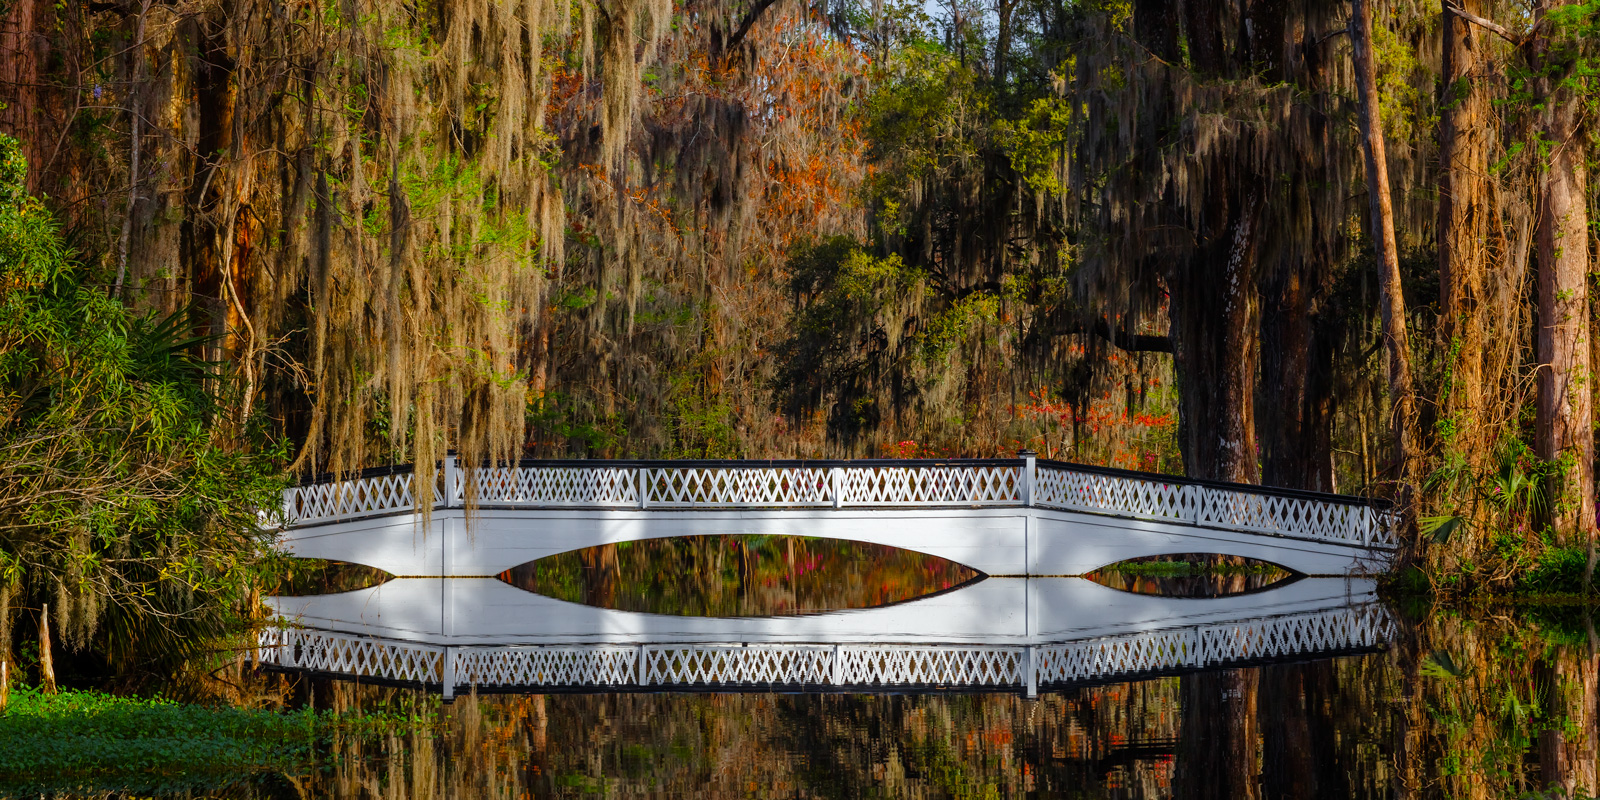 South Carolina, Charleston, Magnolia, Plantation, Bridge